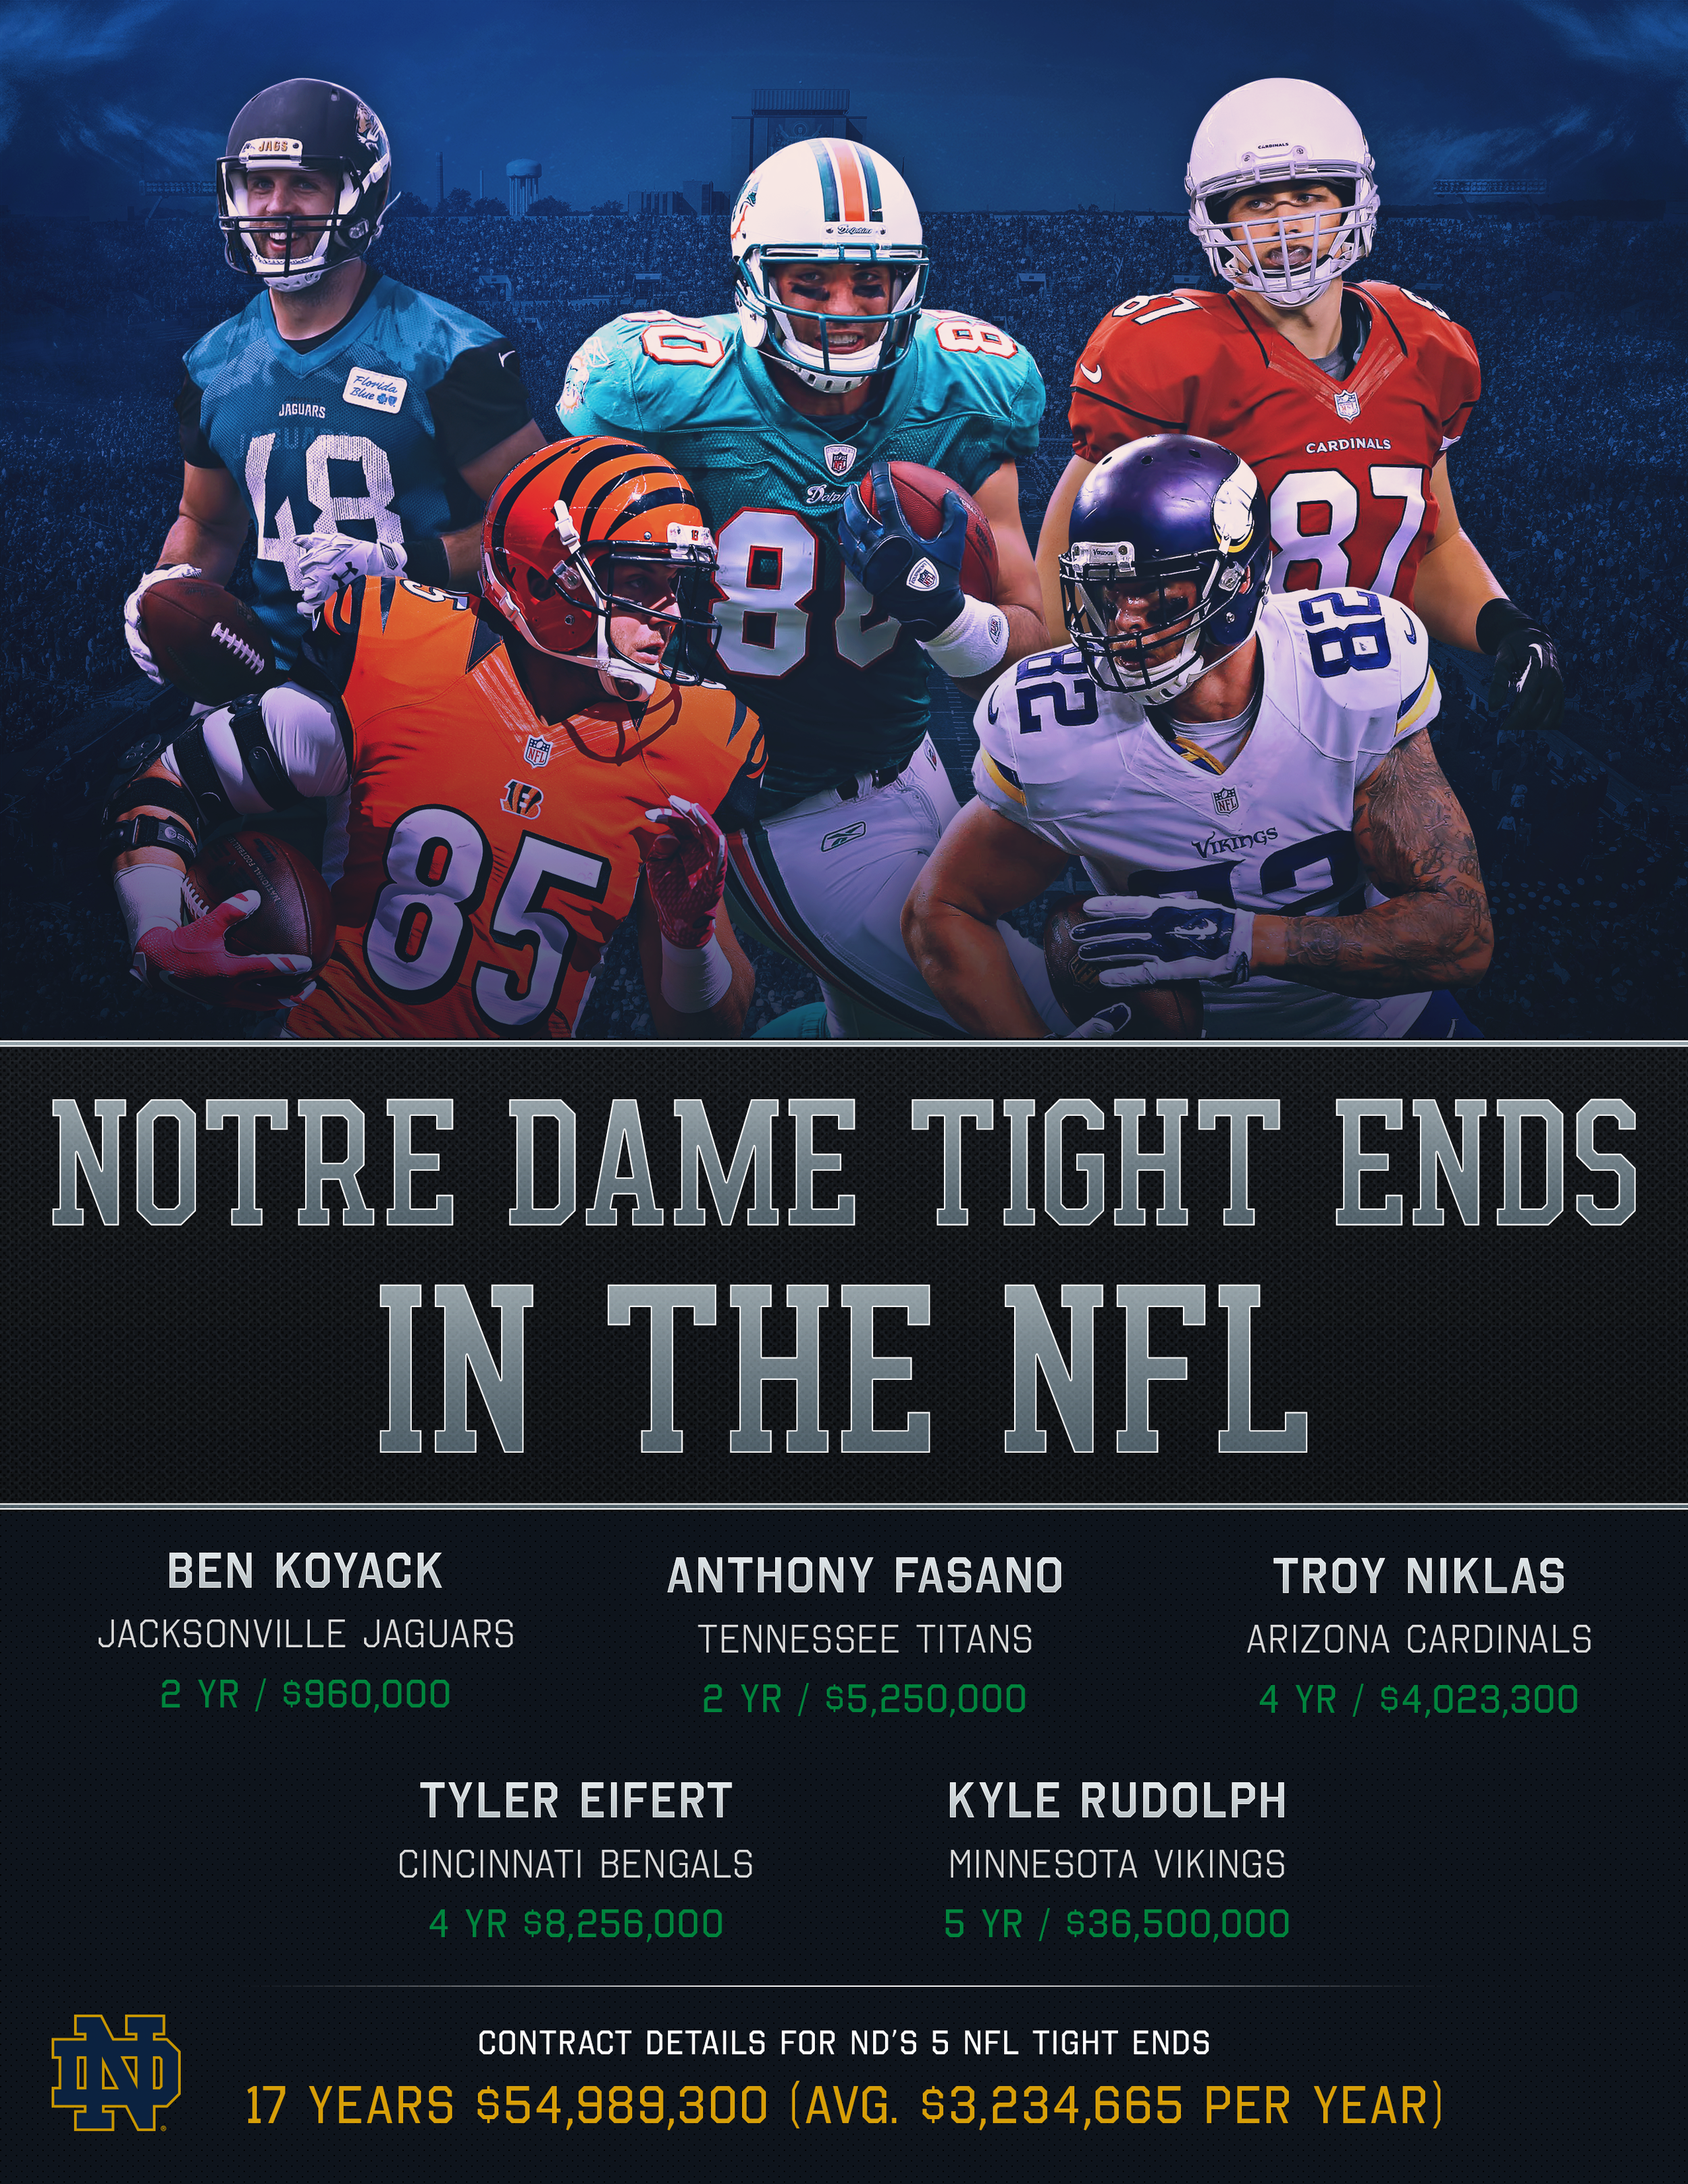 Notre Dame Tight Ends in the NFL